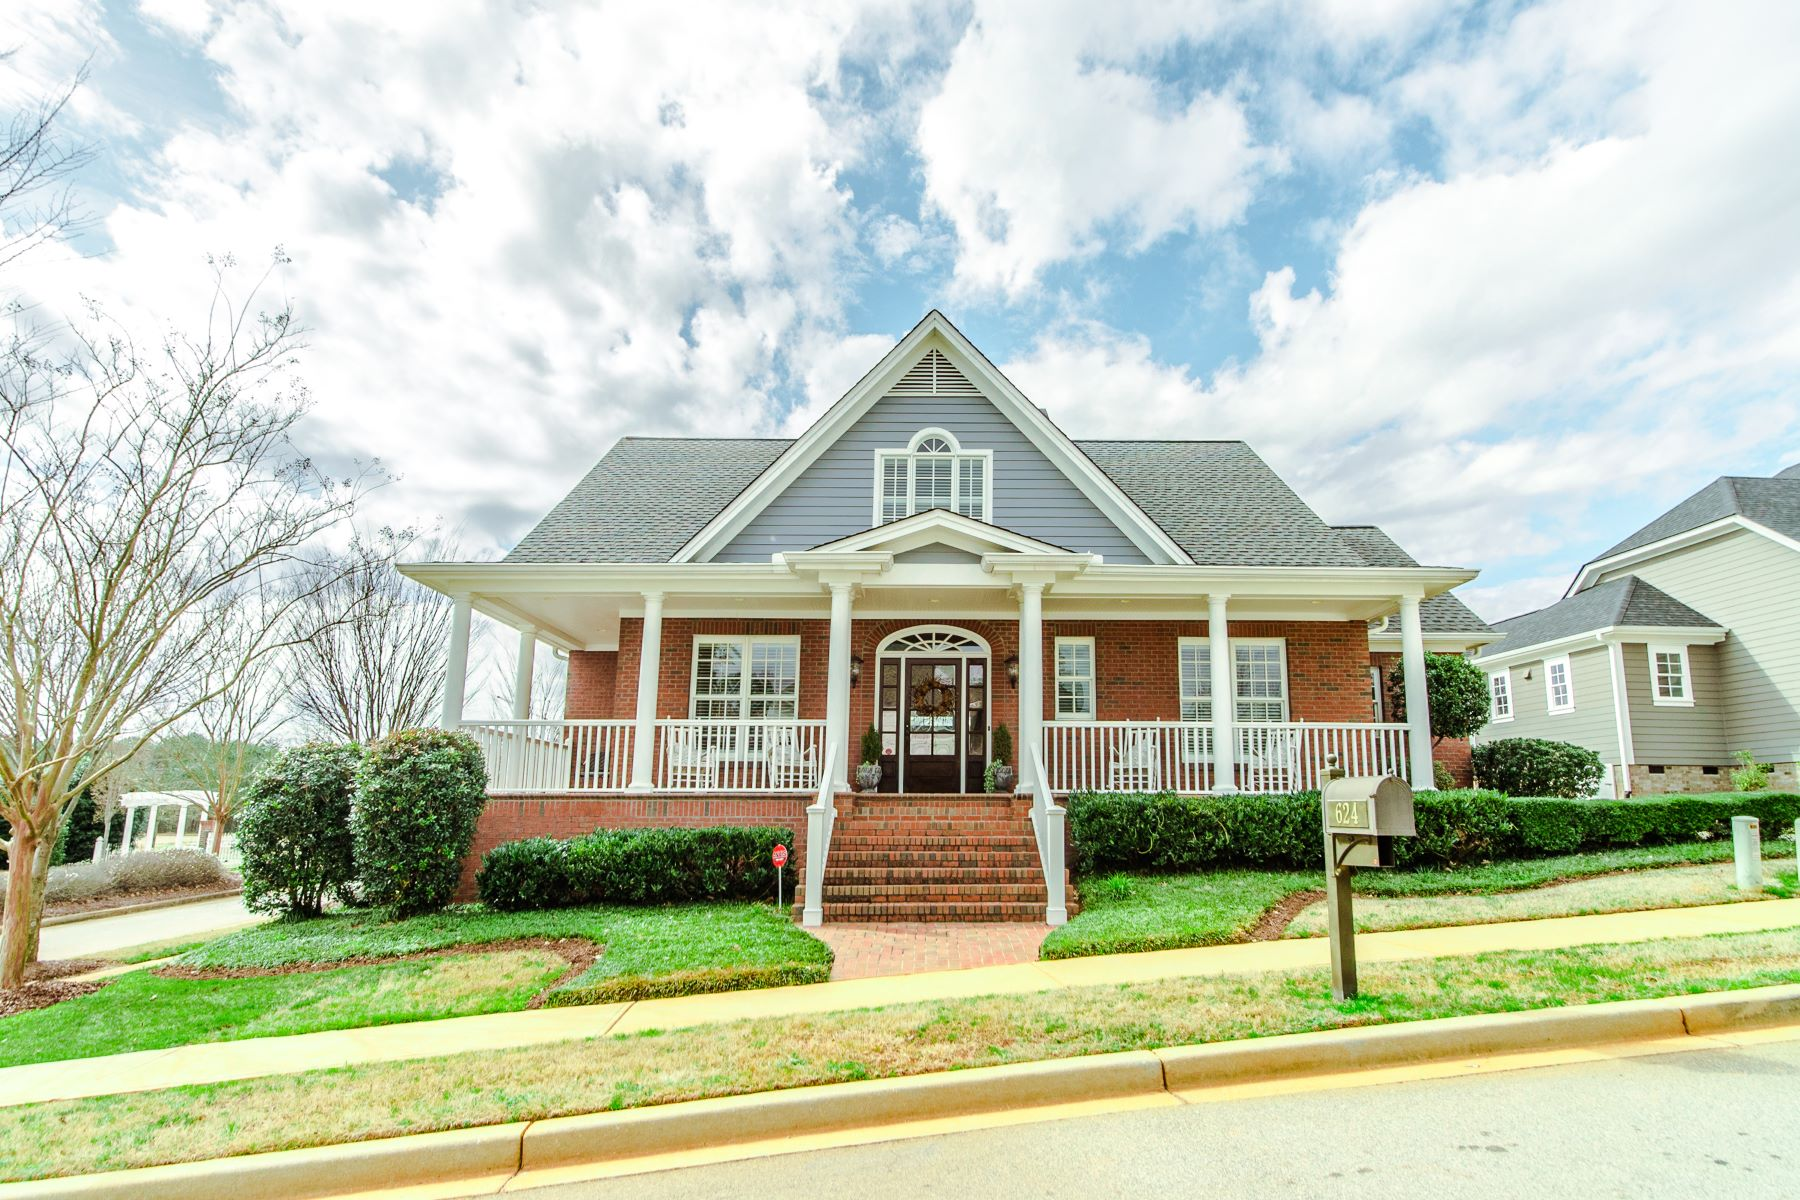 Single Family Homes for Active at Beautiful Custom Home! 624 Berkmans Lane Greenville, South Carolina 29605 United States